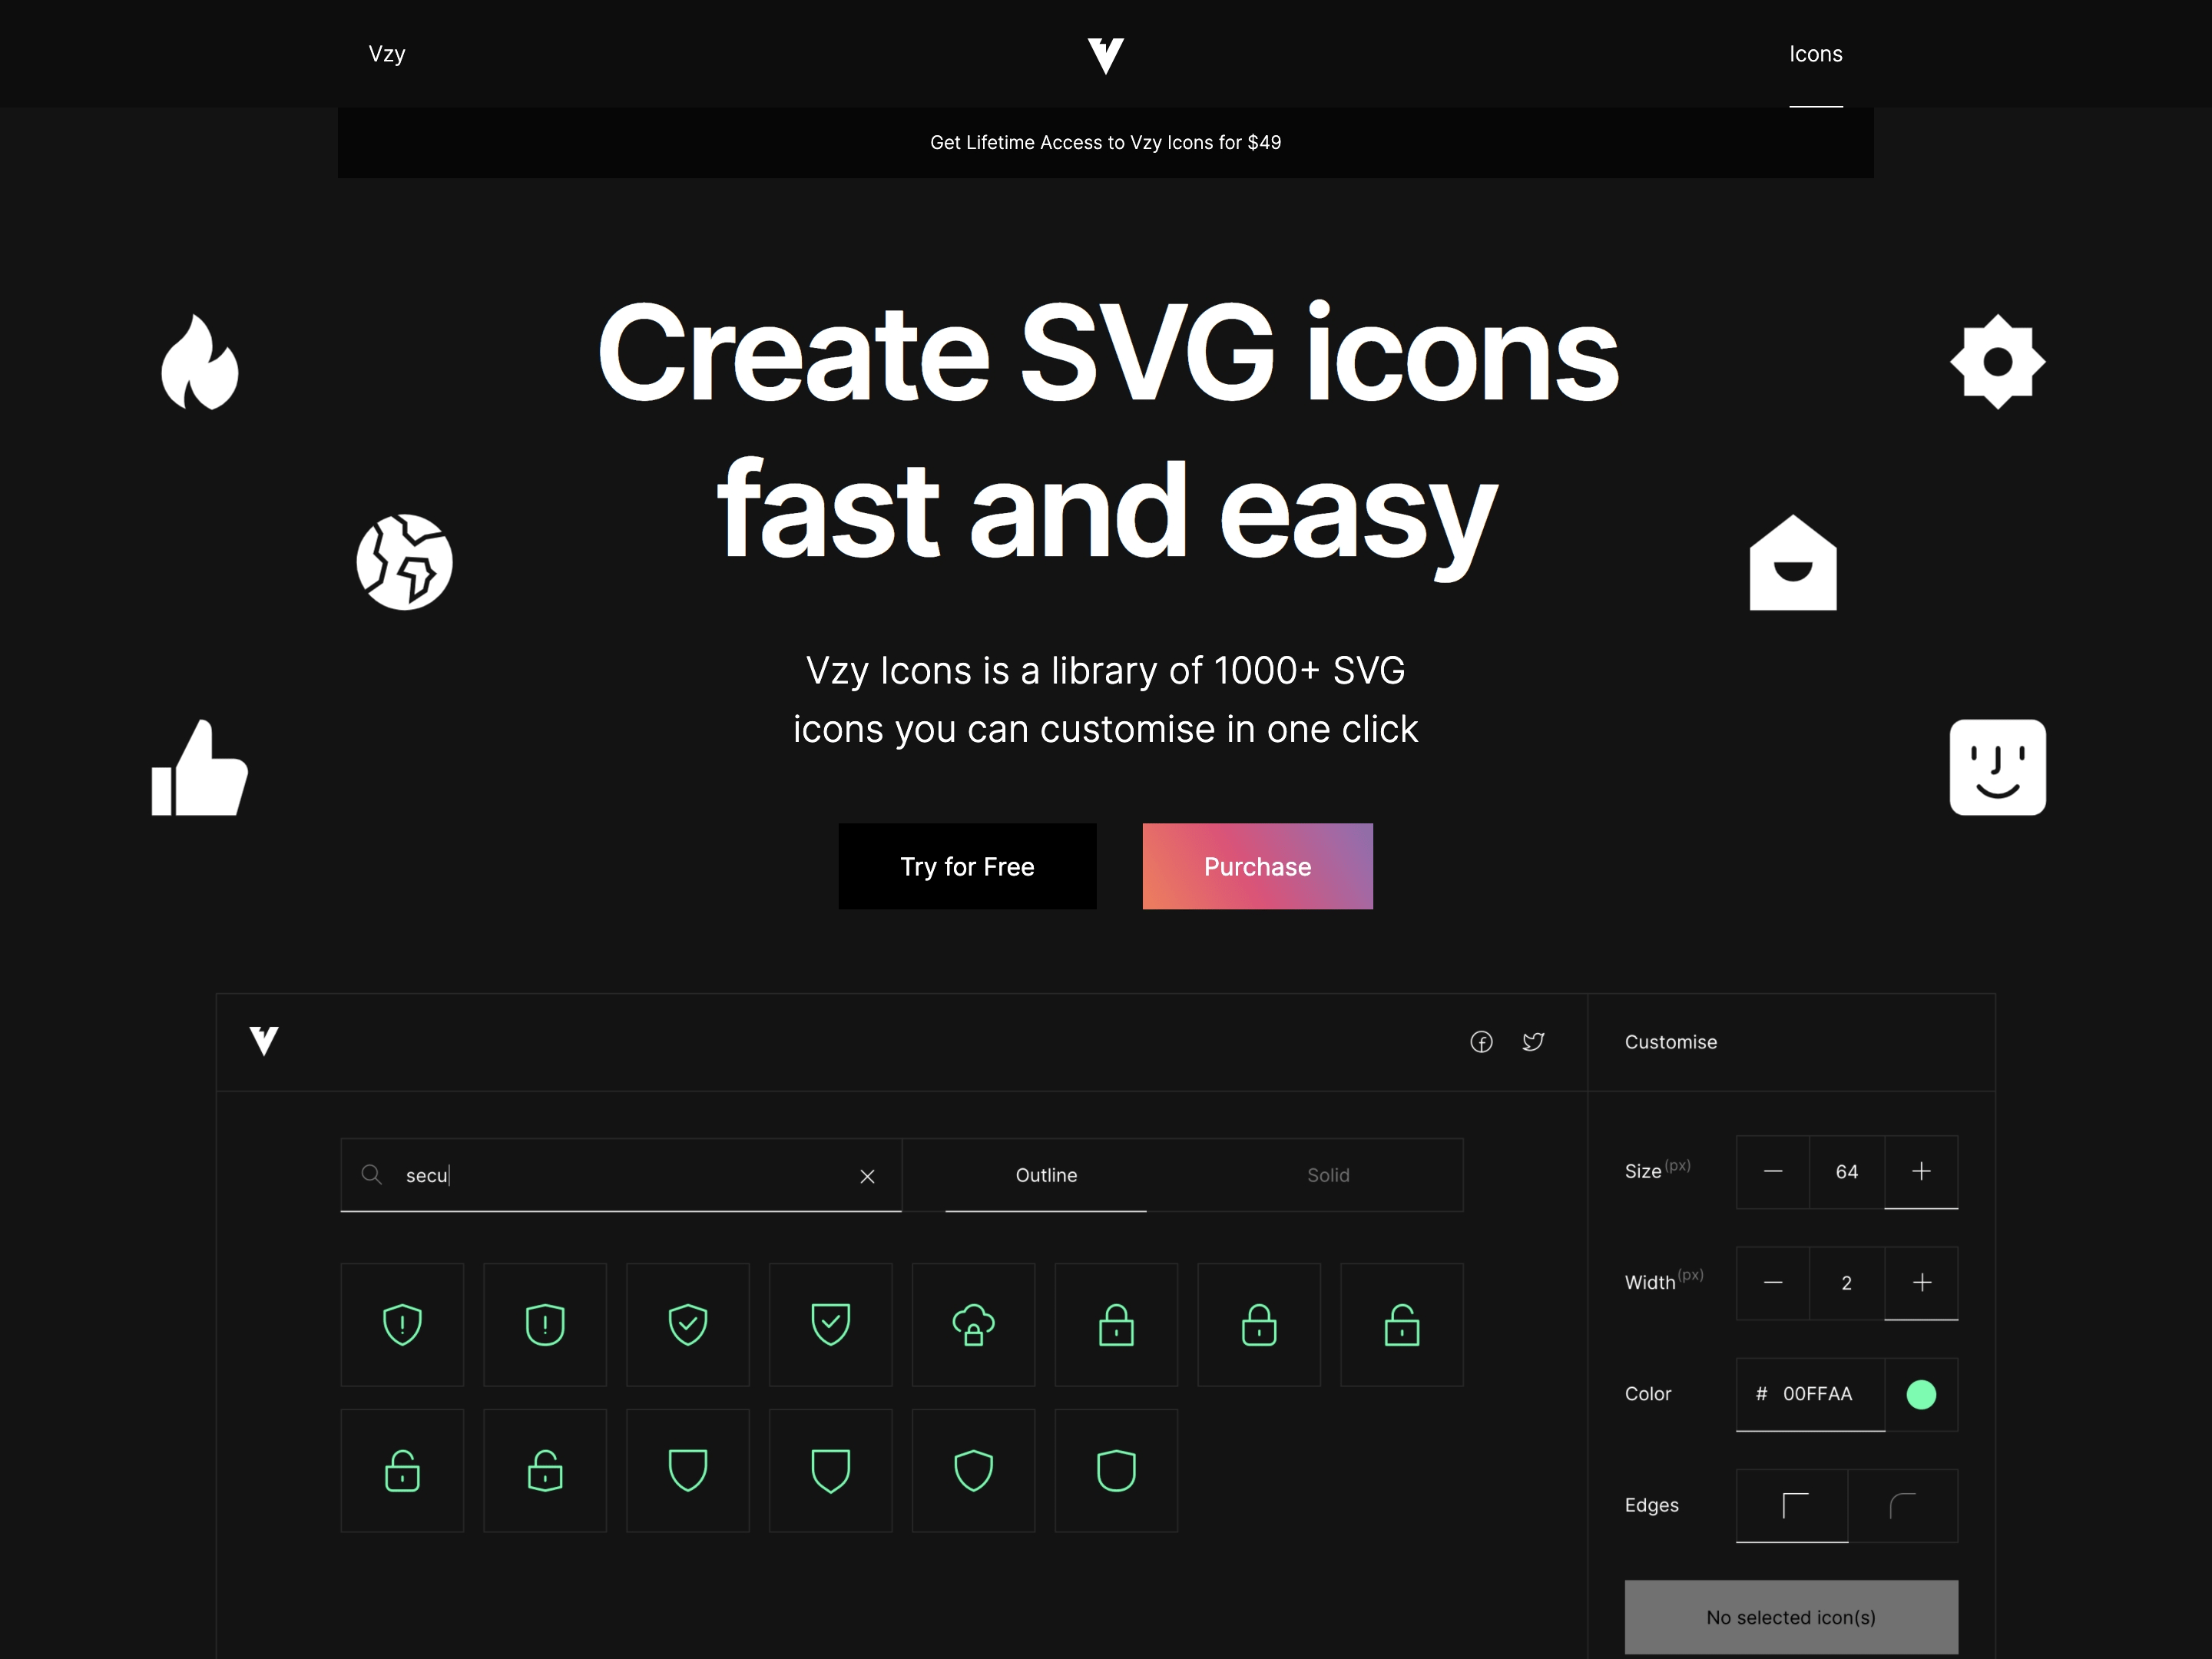 Vzy Icons